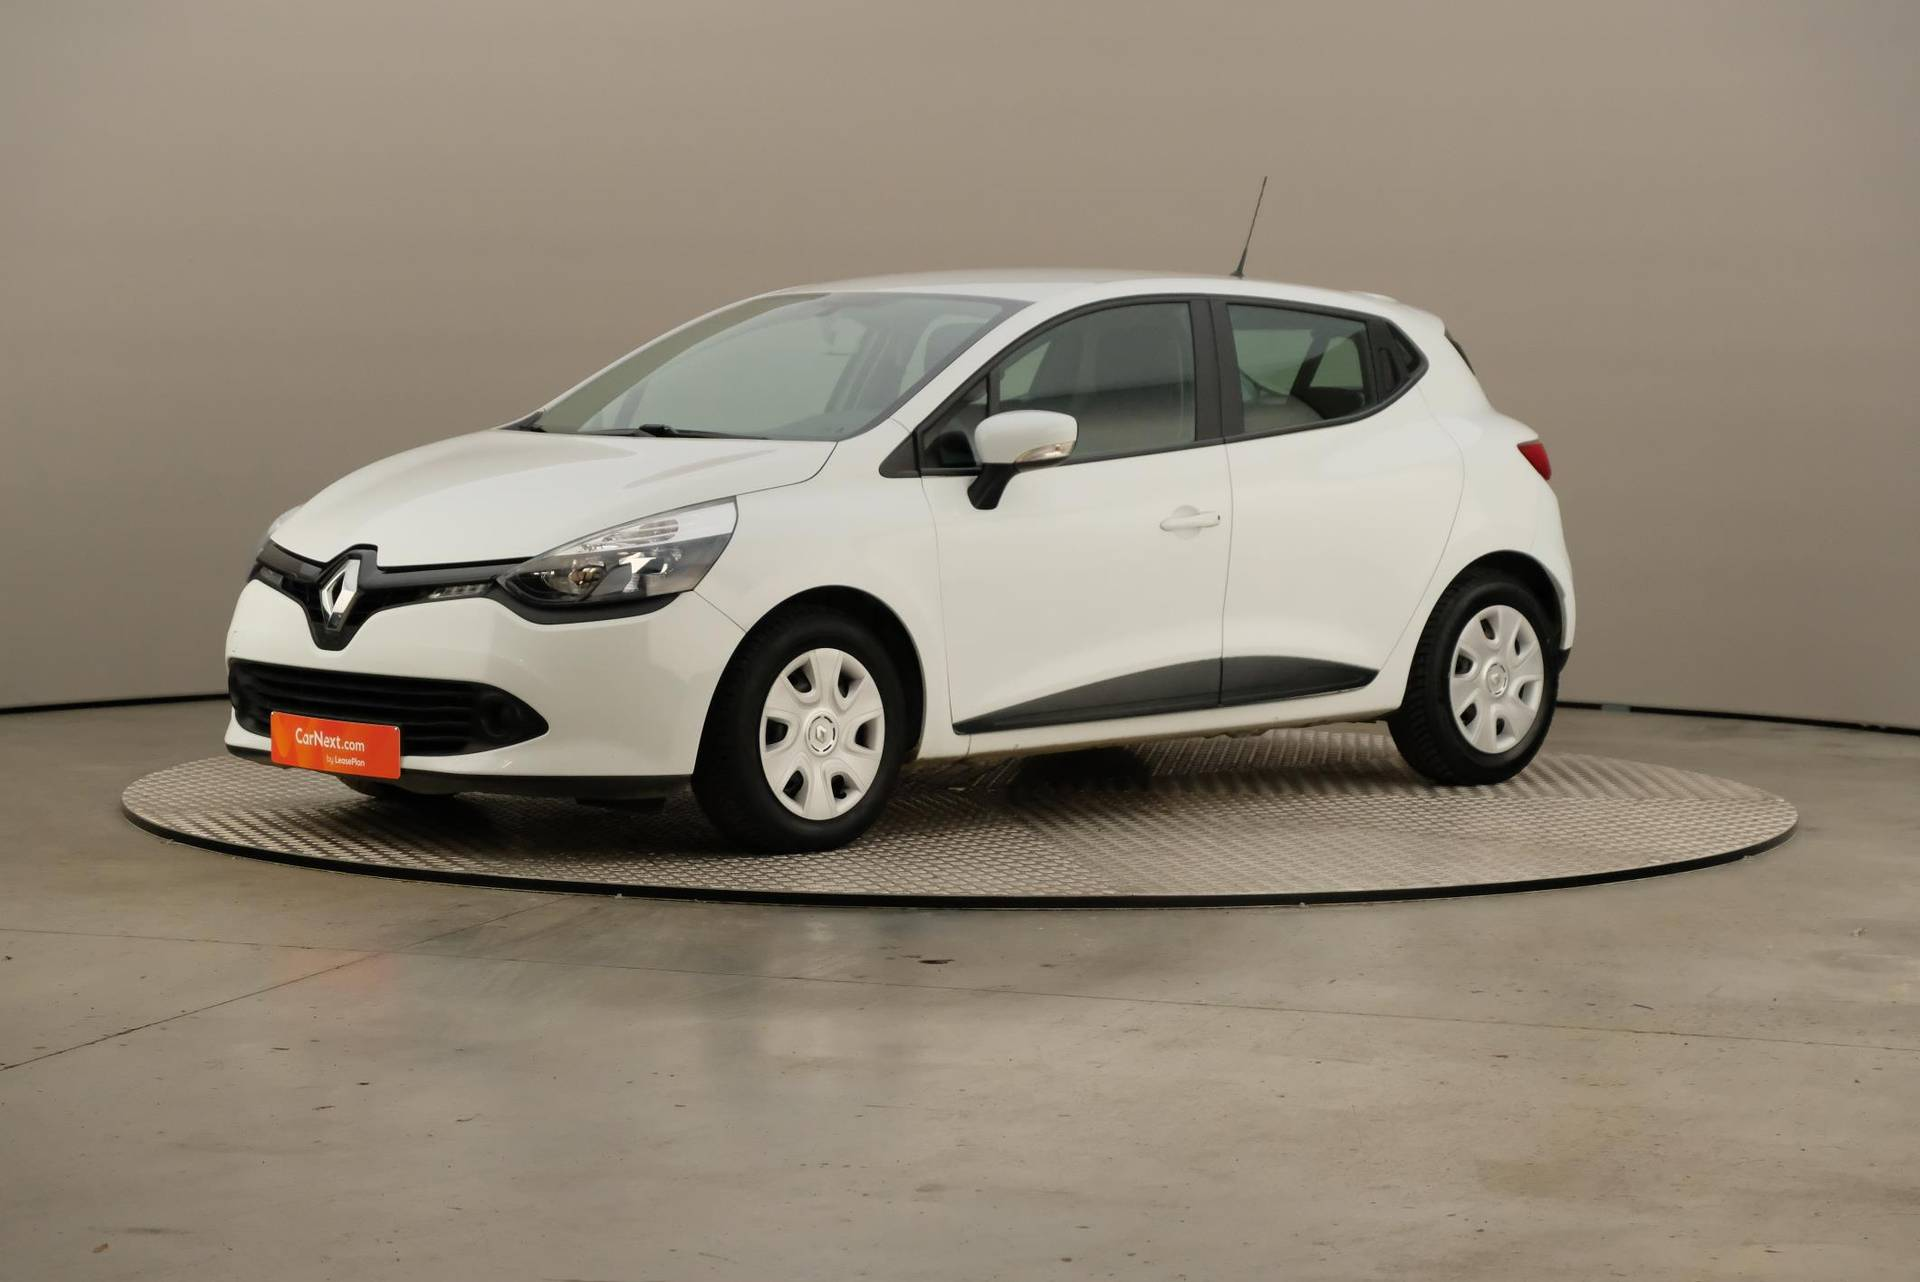 Renault Clio 1.2 16V Collection LED CRUISECONTROL, 360-image0